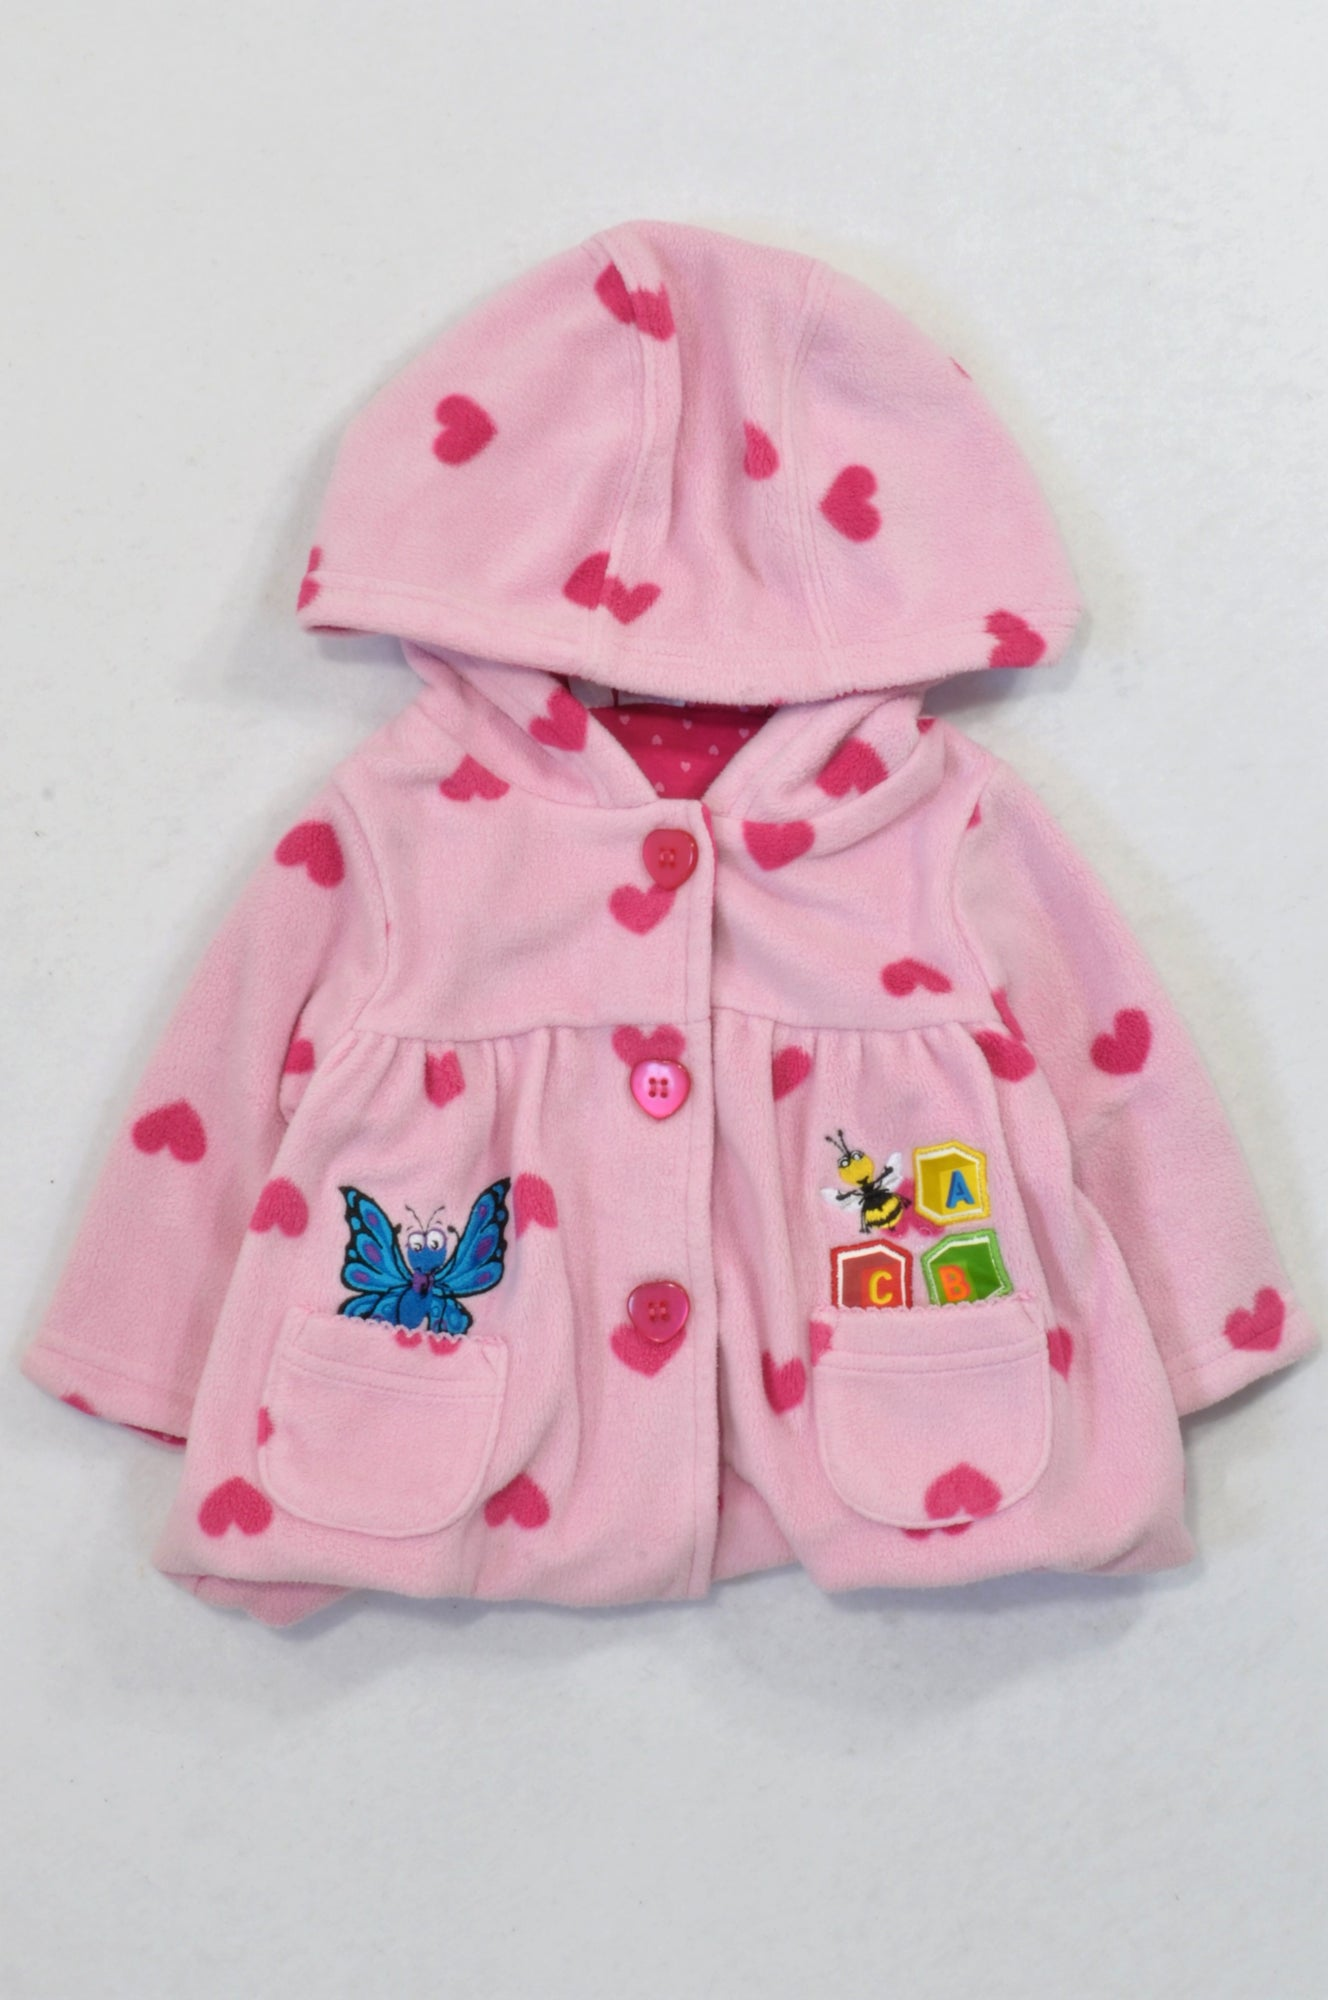 ABC Pink Fleece Heart Jacket Girls 3-6 months